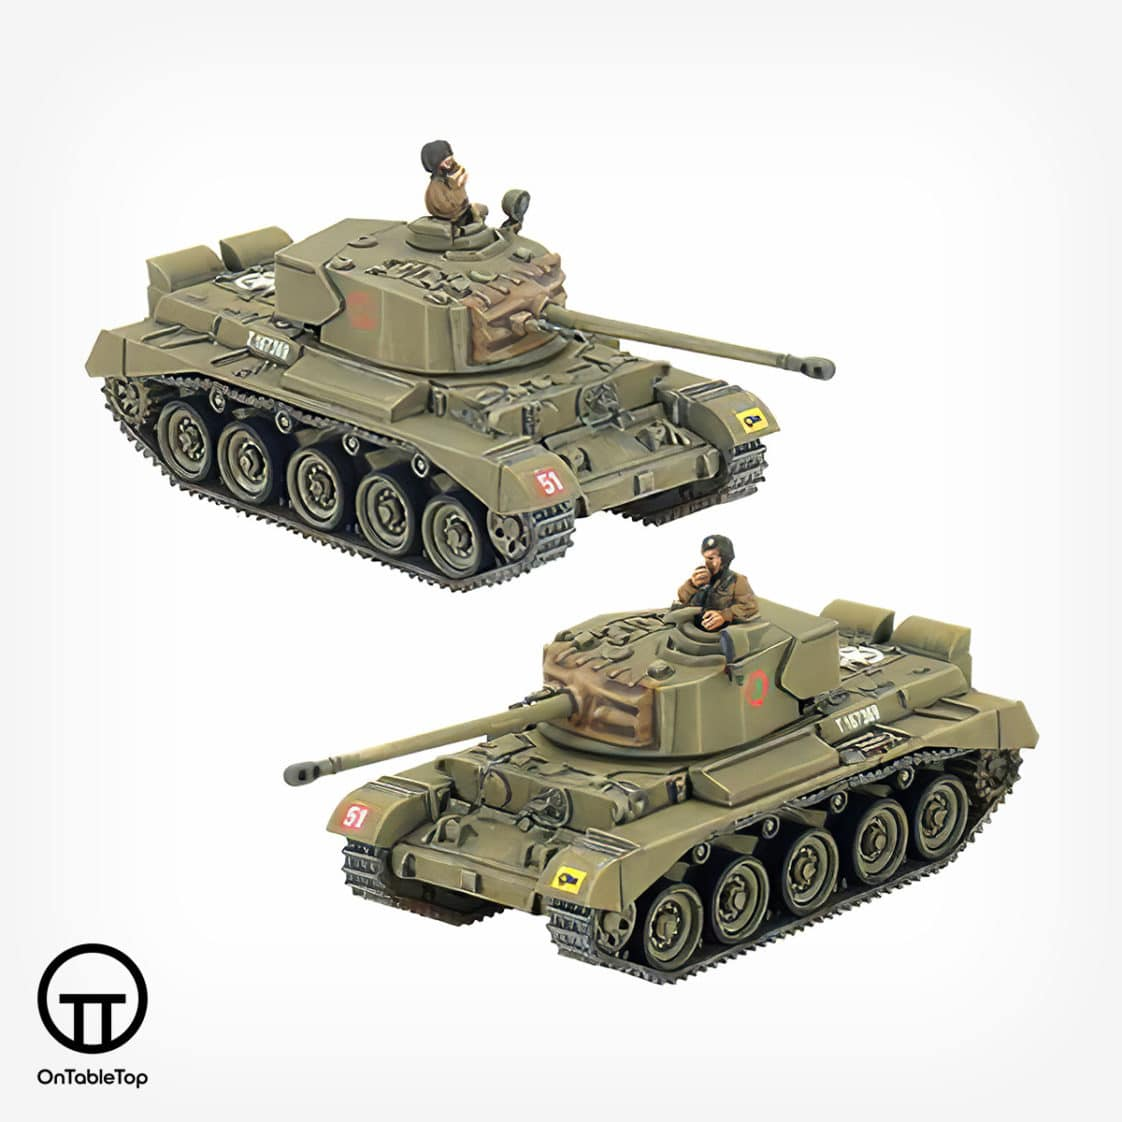 OTT-TANKS09-British-Comet-Tank-Expansion-Miniature